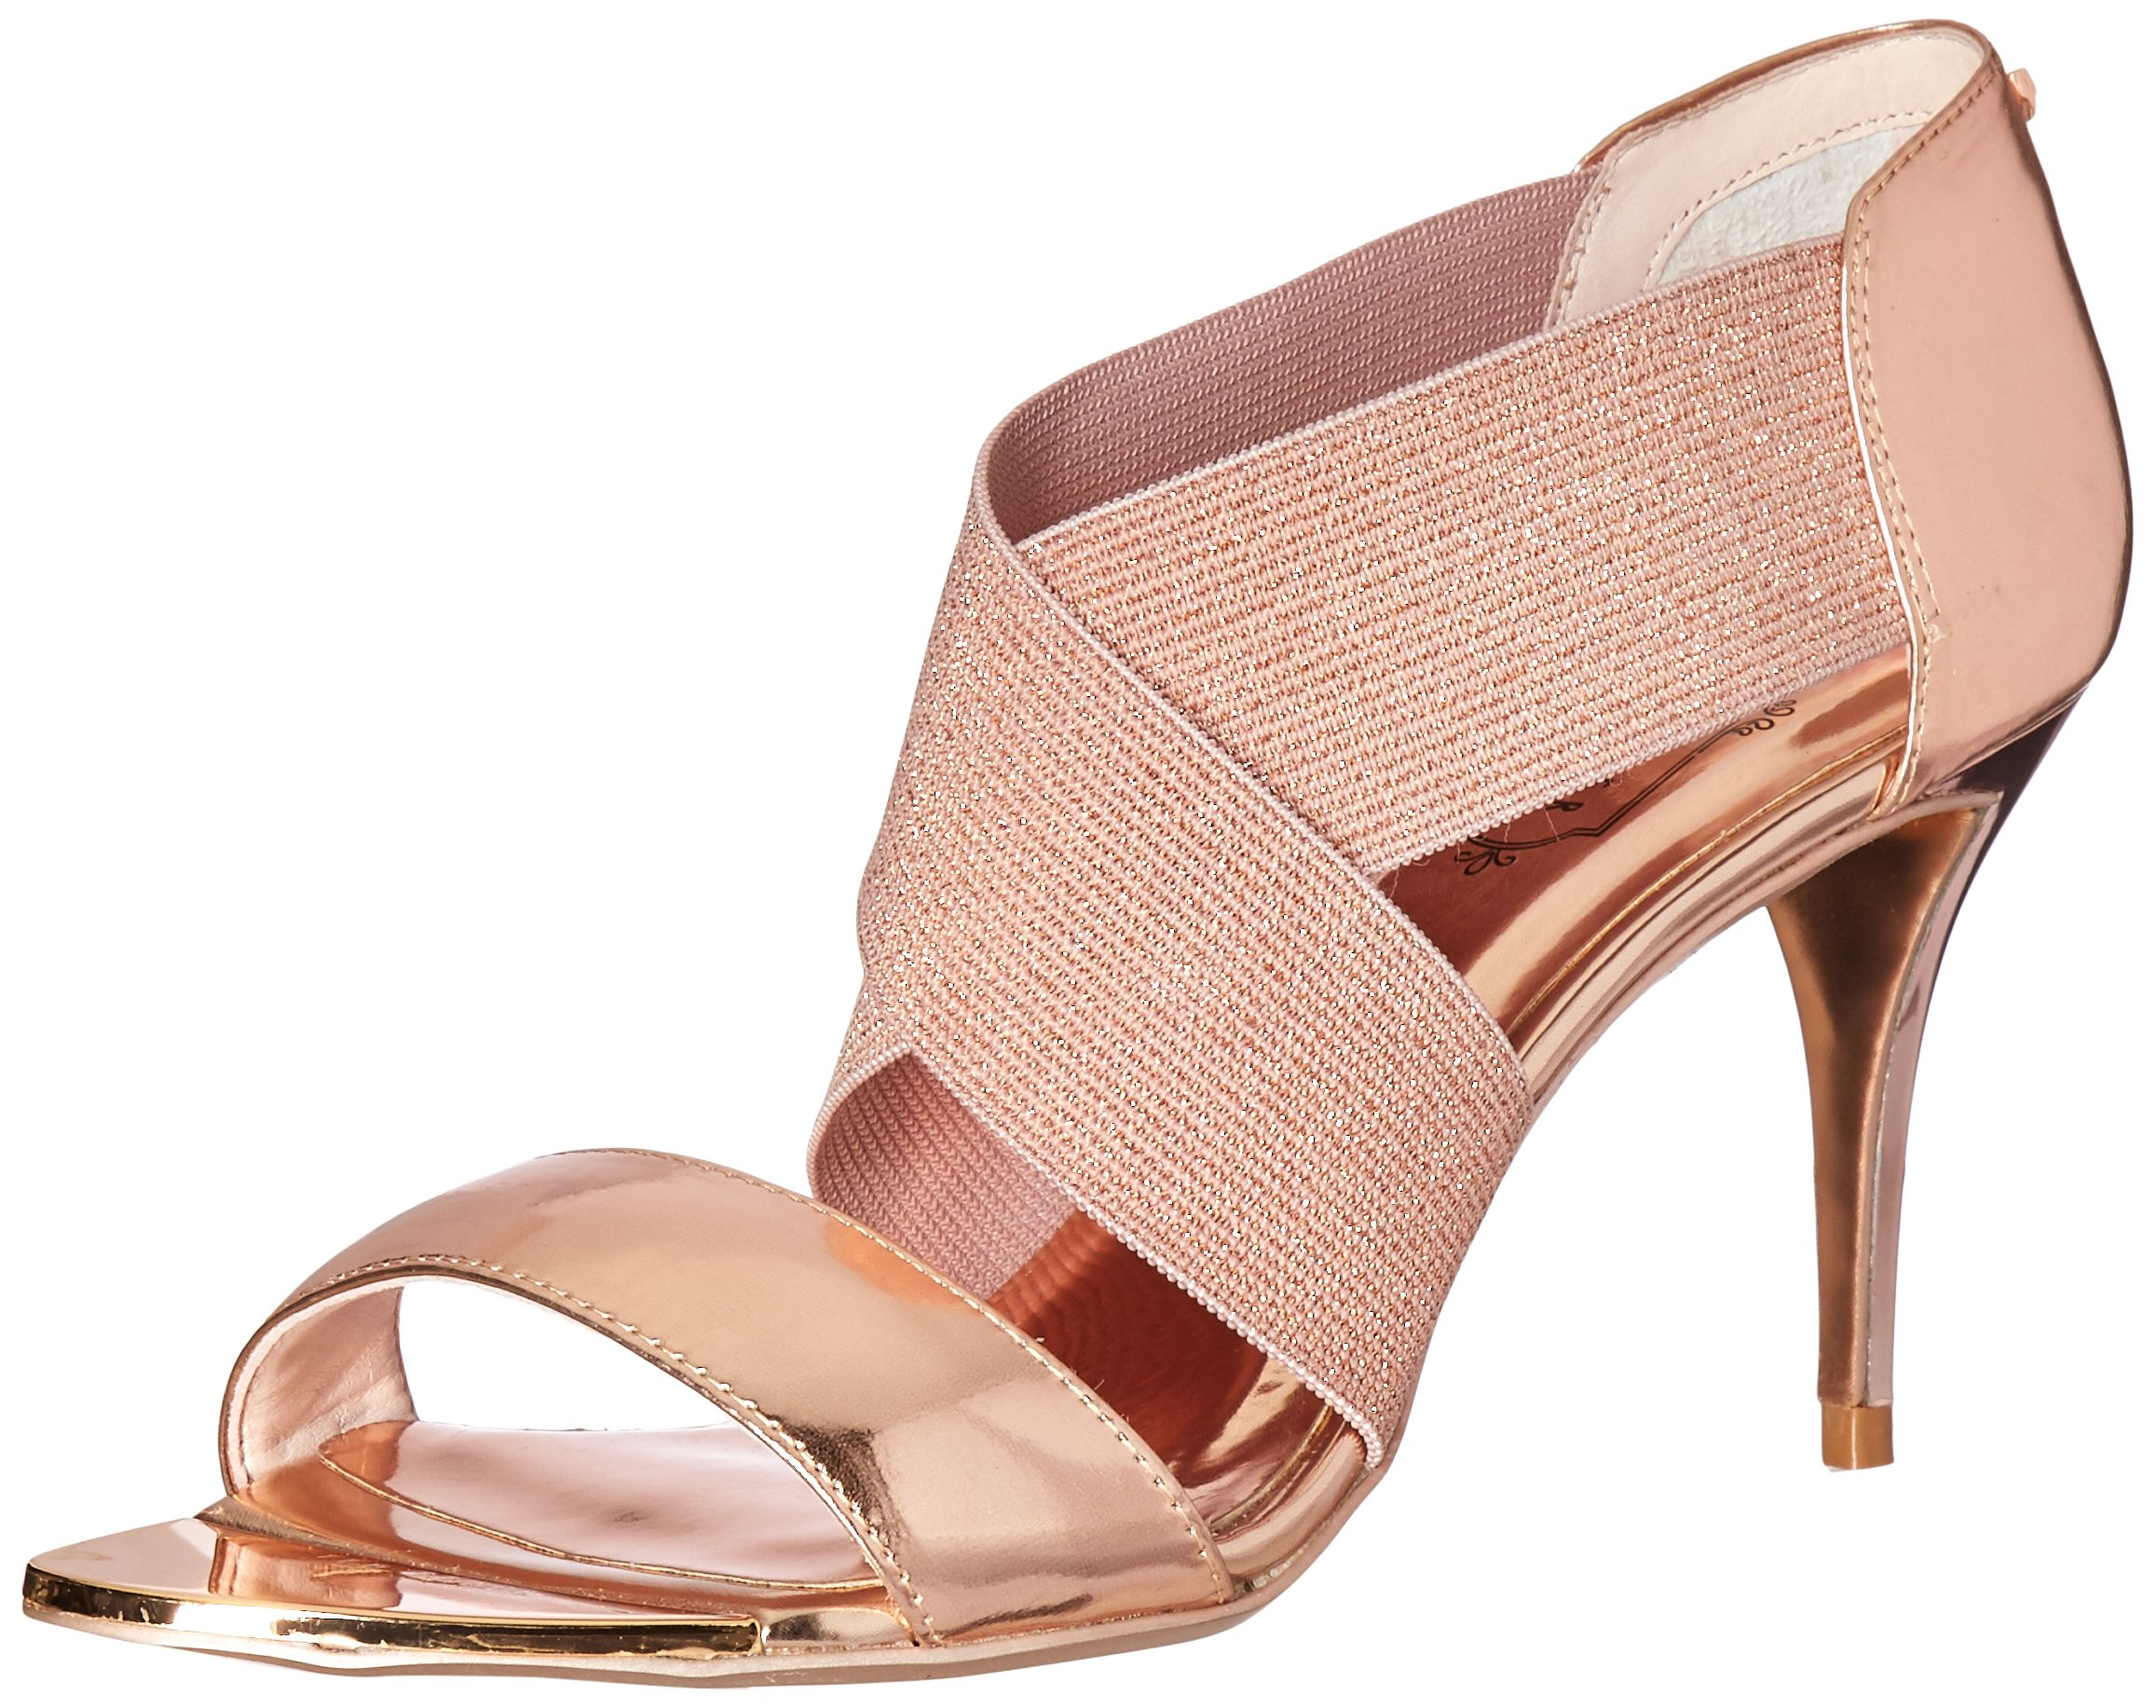 Ted Baker Women's Leniya Lthr AF Formal Shoe Dress Sandal, Rose Gold, 8.5 M US